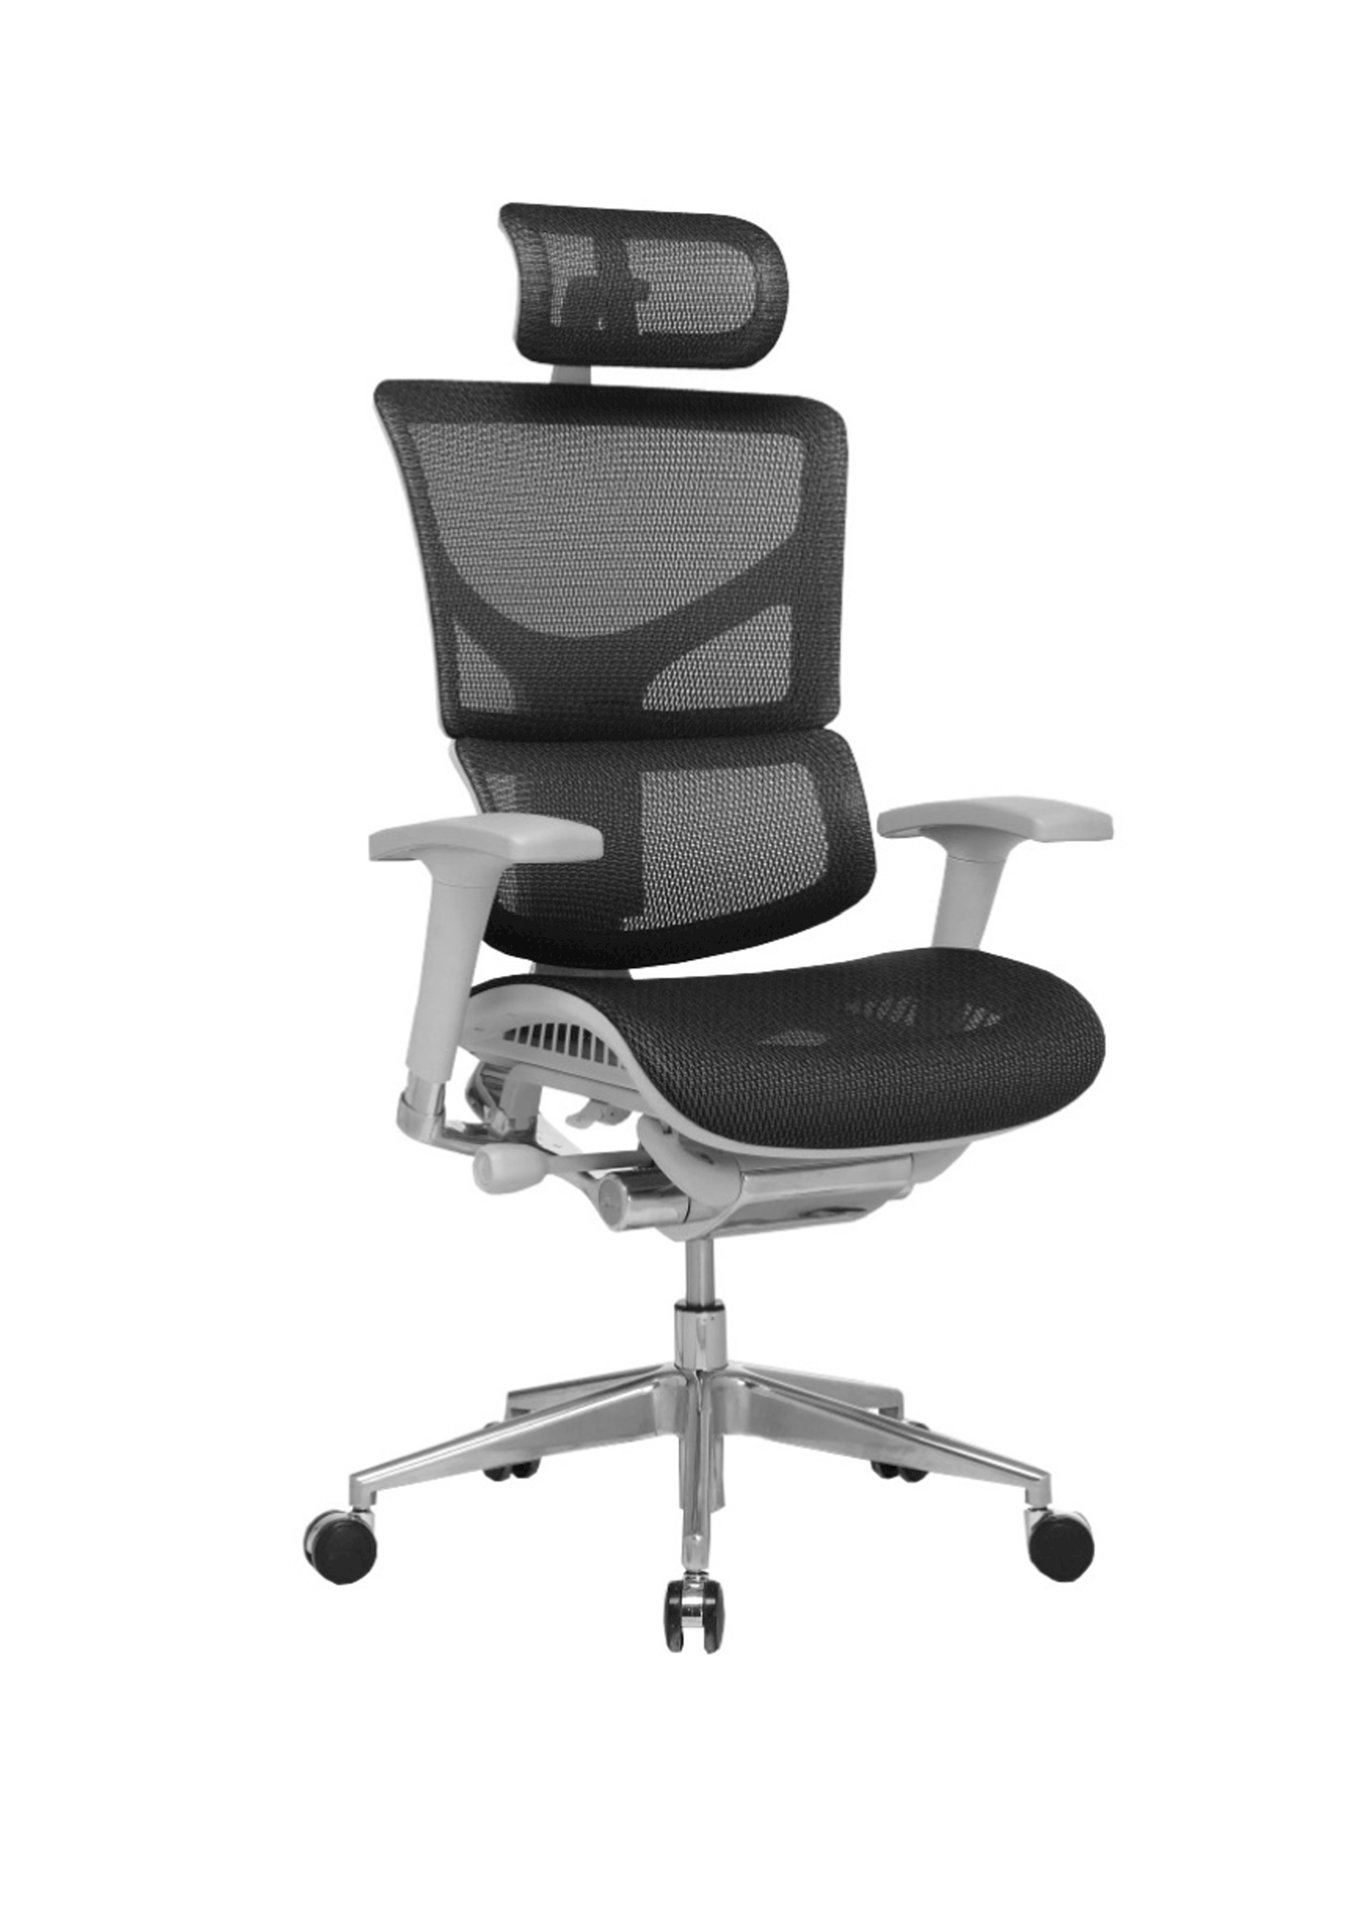 Ergo Dynamic Posture Chair Black Mesh Grey Frame With Arms With